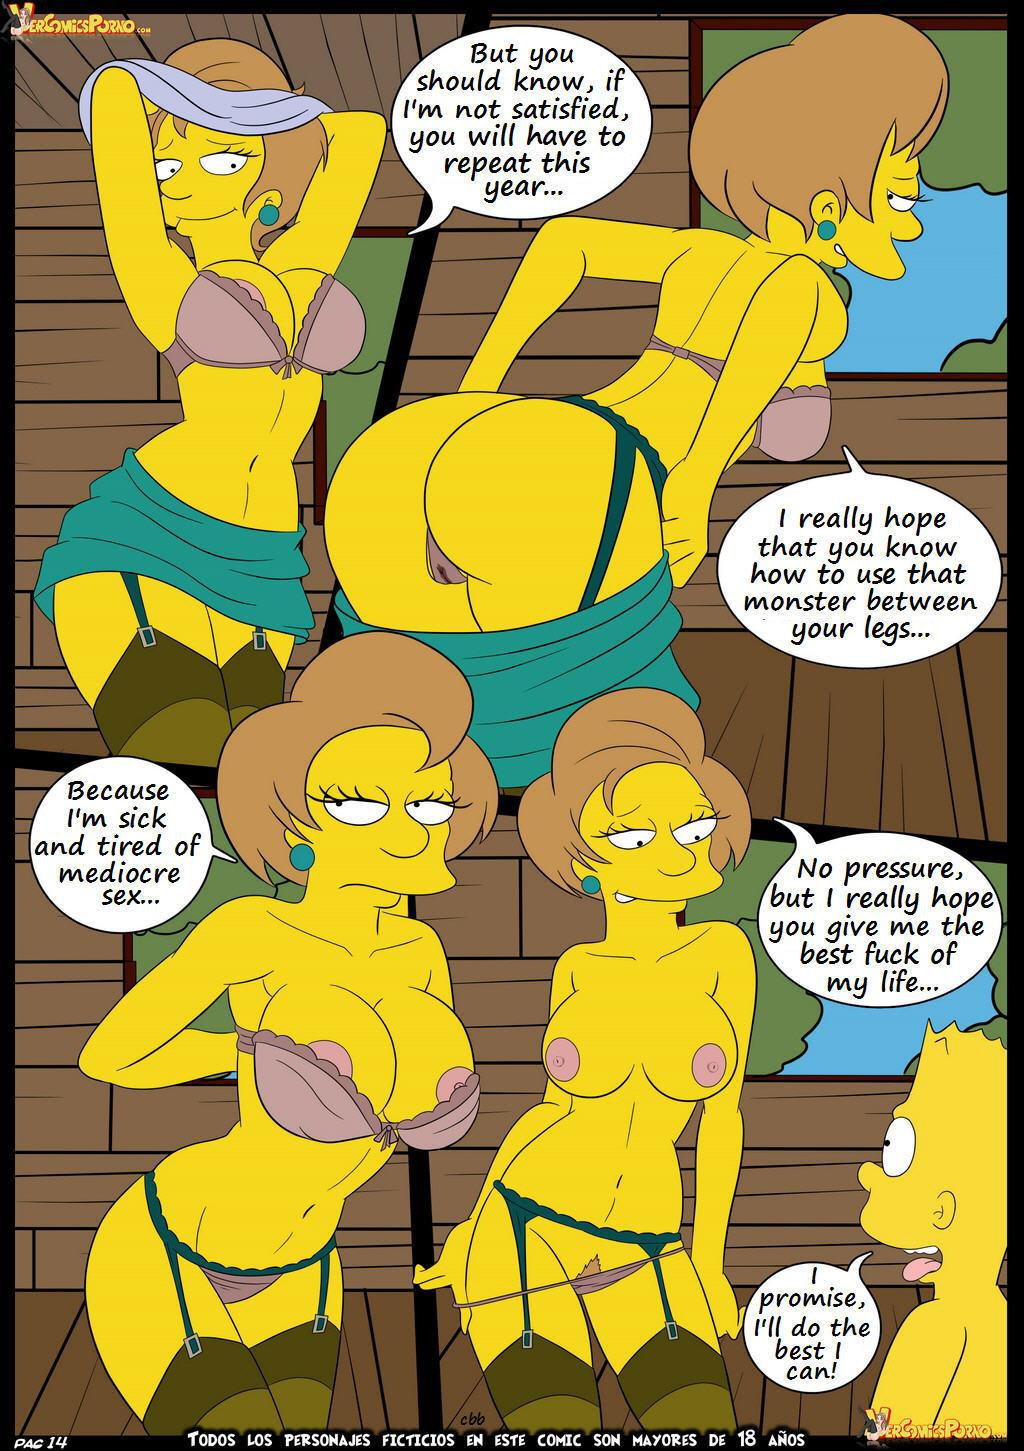 15 34 - The Simpsons. Part 5.